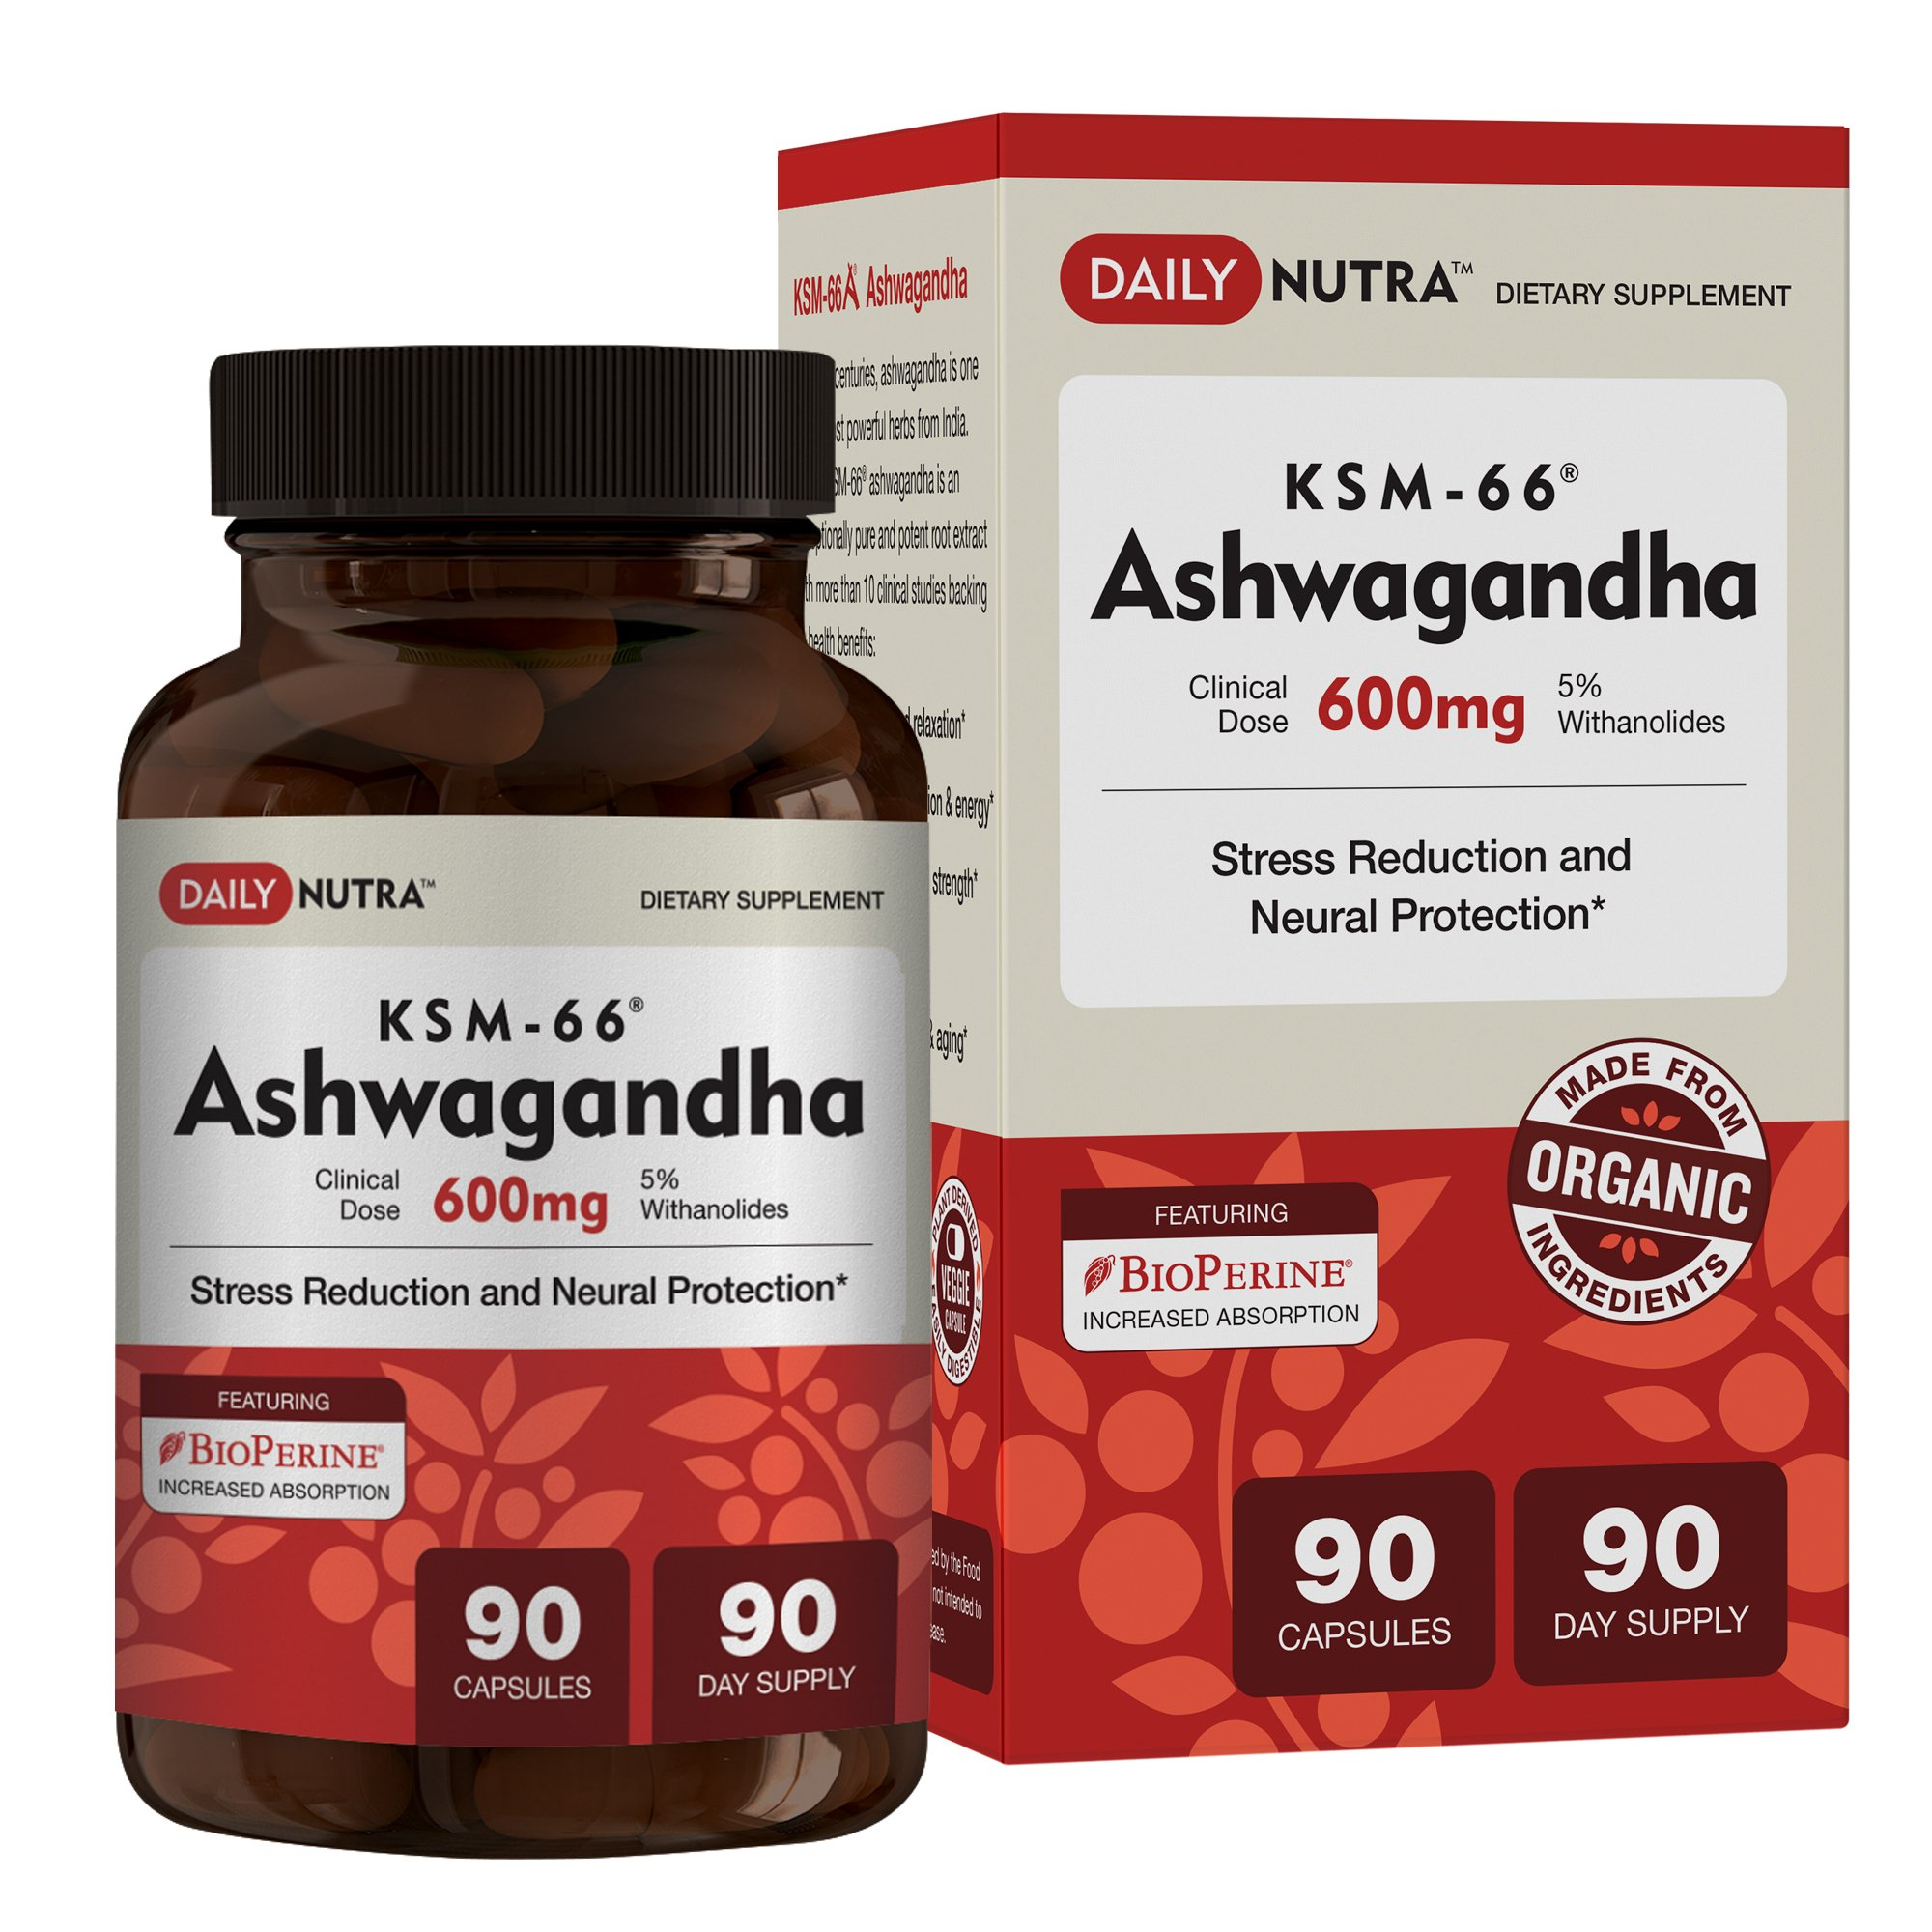 KSM-66 Ashwagandha by DailyNutra – 600mg Organic Root Extract – High Potency Supplement with 5% Withanolides | Stress Relief, Increased Energy and Focus (90 Capsules)